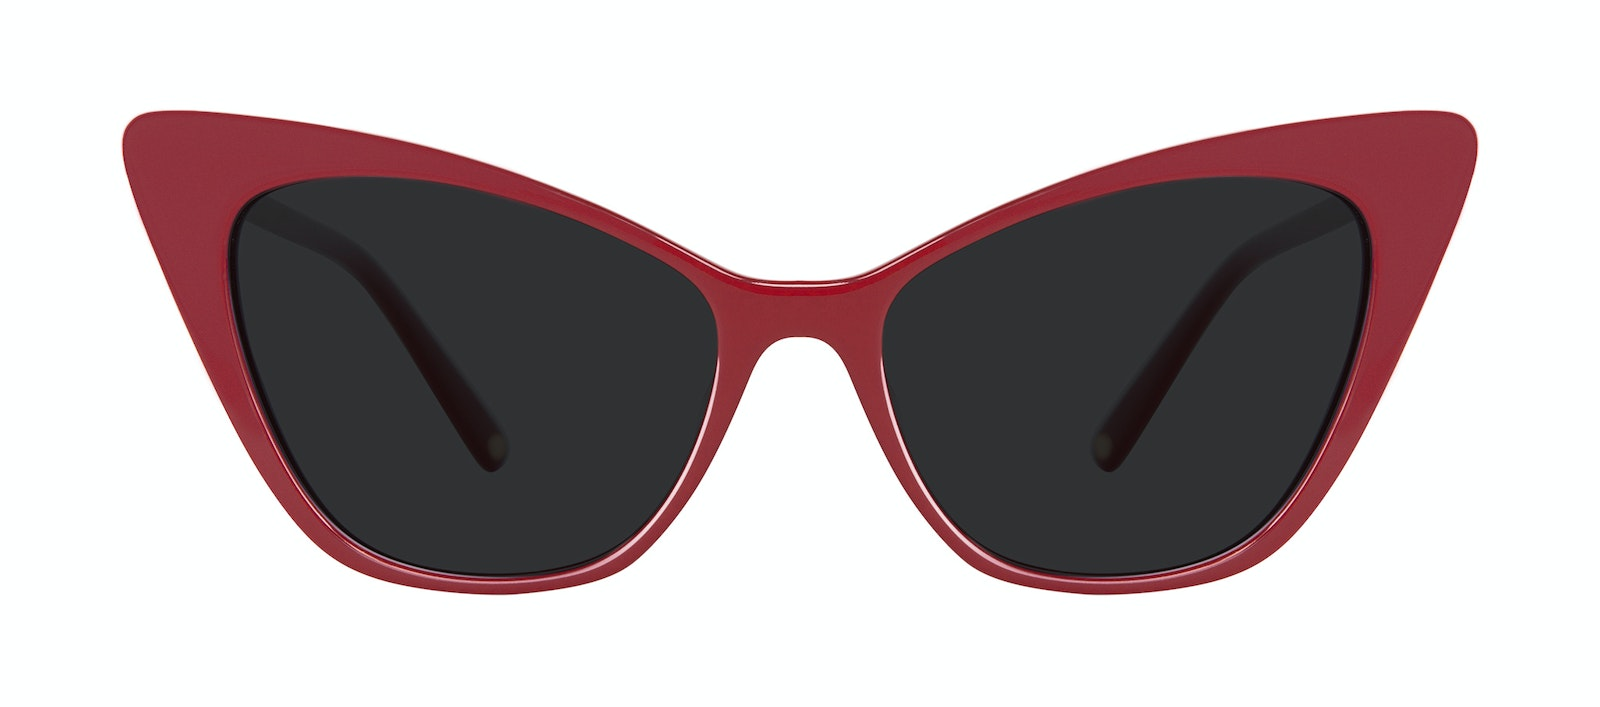 Affordable Fashion Glasses Cat Eye Sunglasses Women Keiko Lynn Ryder Red Front